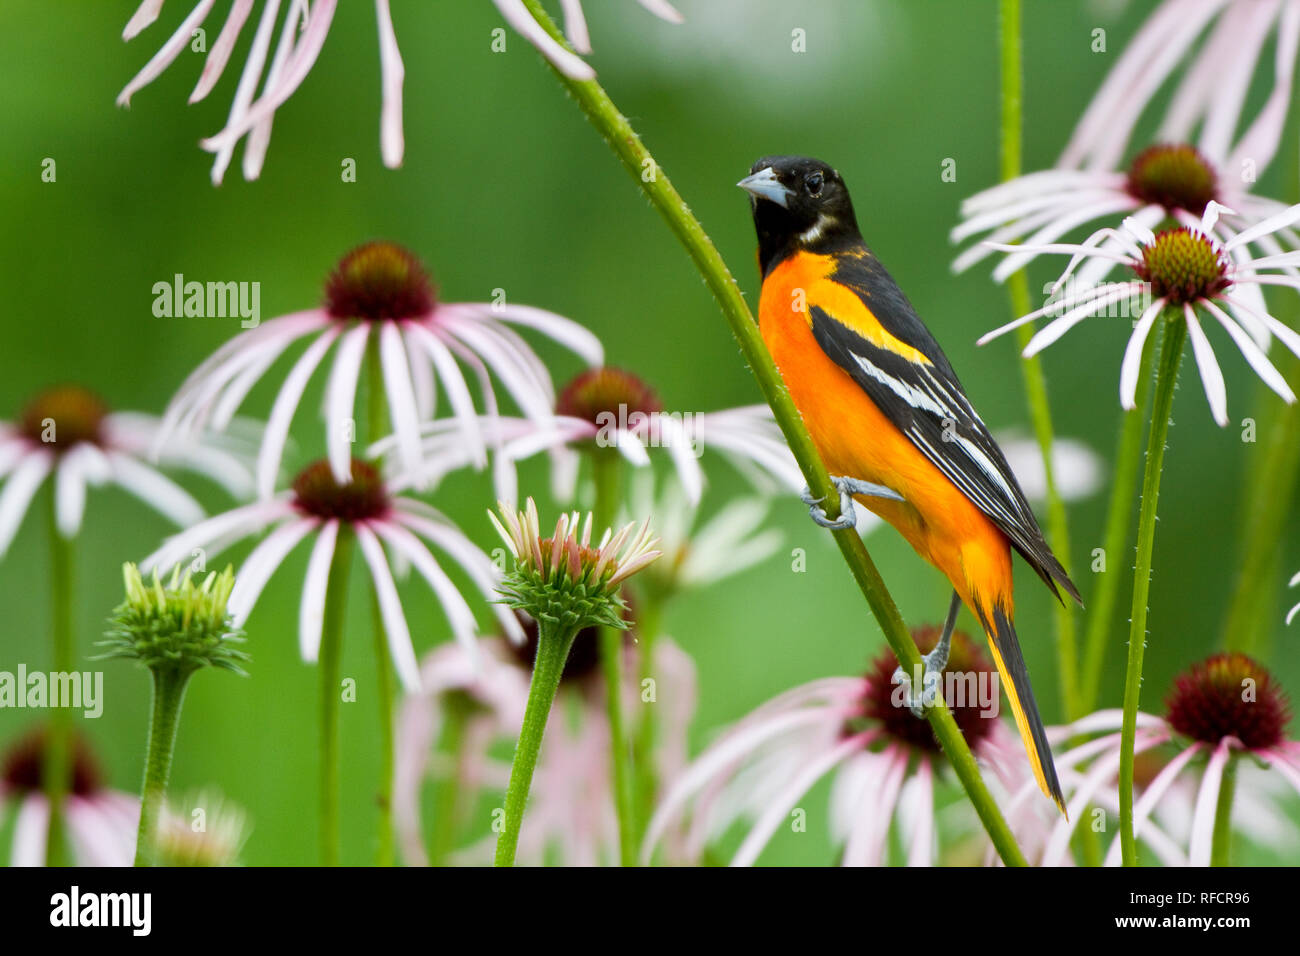 01611-09310 Baltimore Oriole (Icterus galbula) male on Pale Purple Coneflower (Echinacea pallida) in flower garden, Marion Co., IL - Stock Image